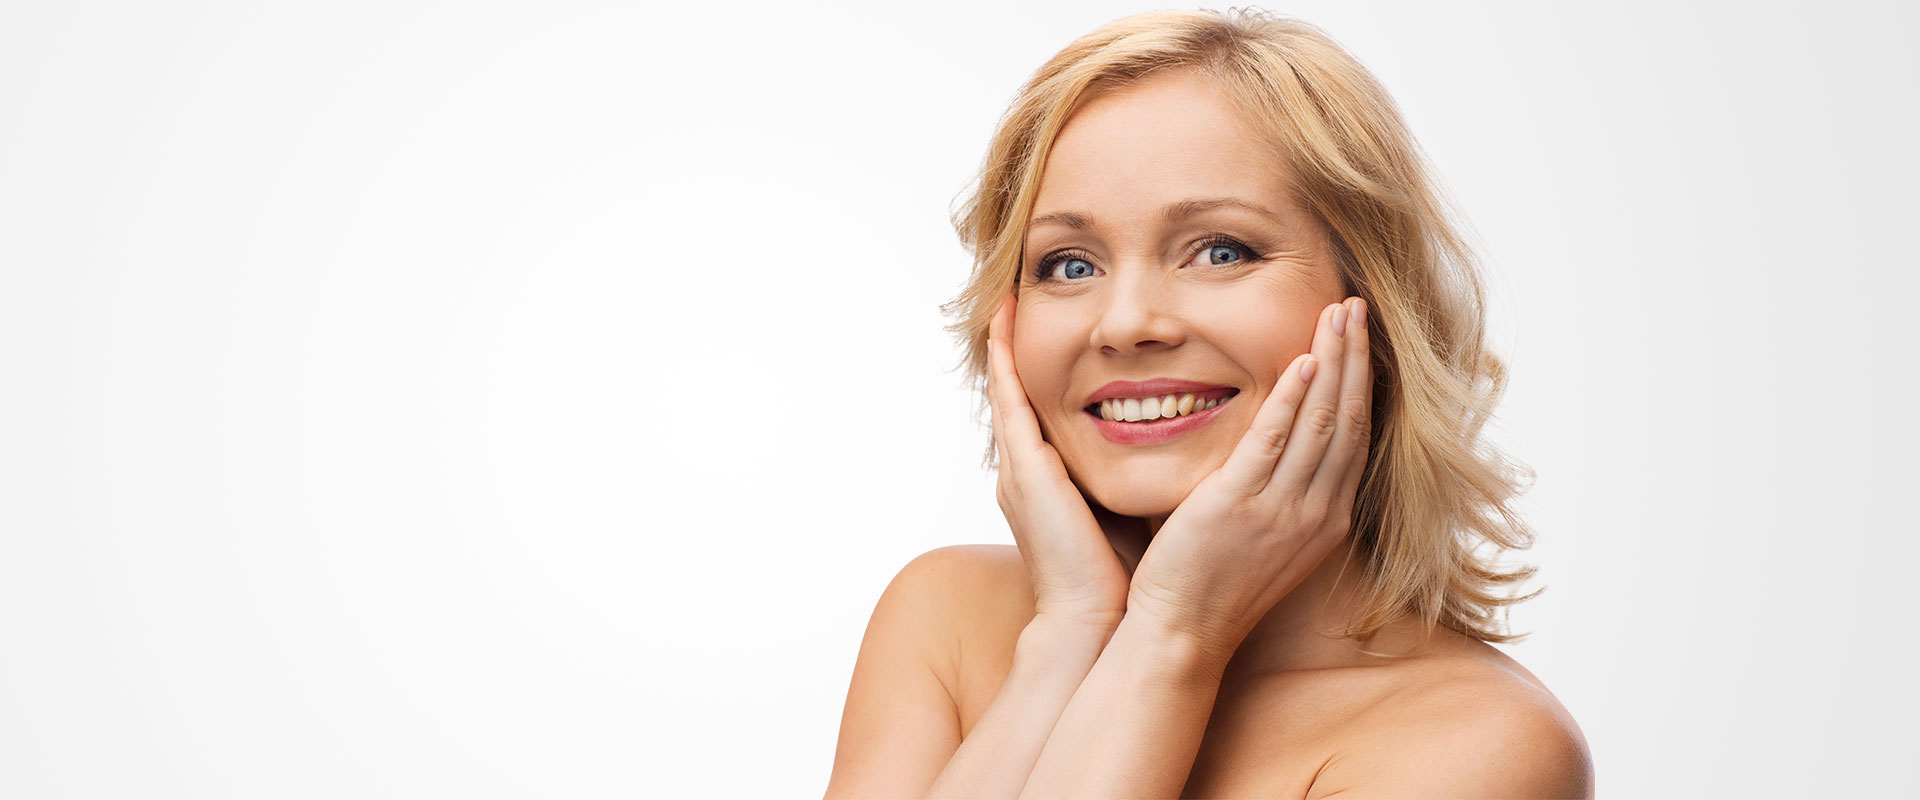 All you need to know about facial fillers - Shire Cosmetic Sydney